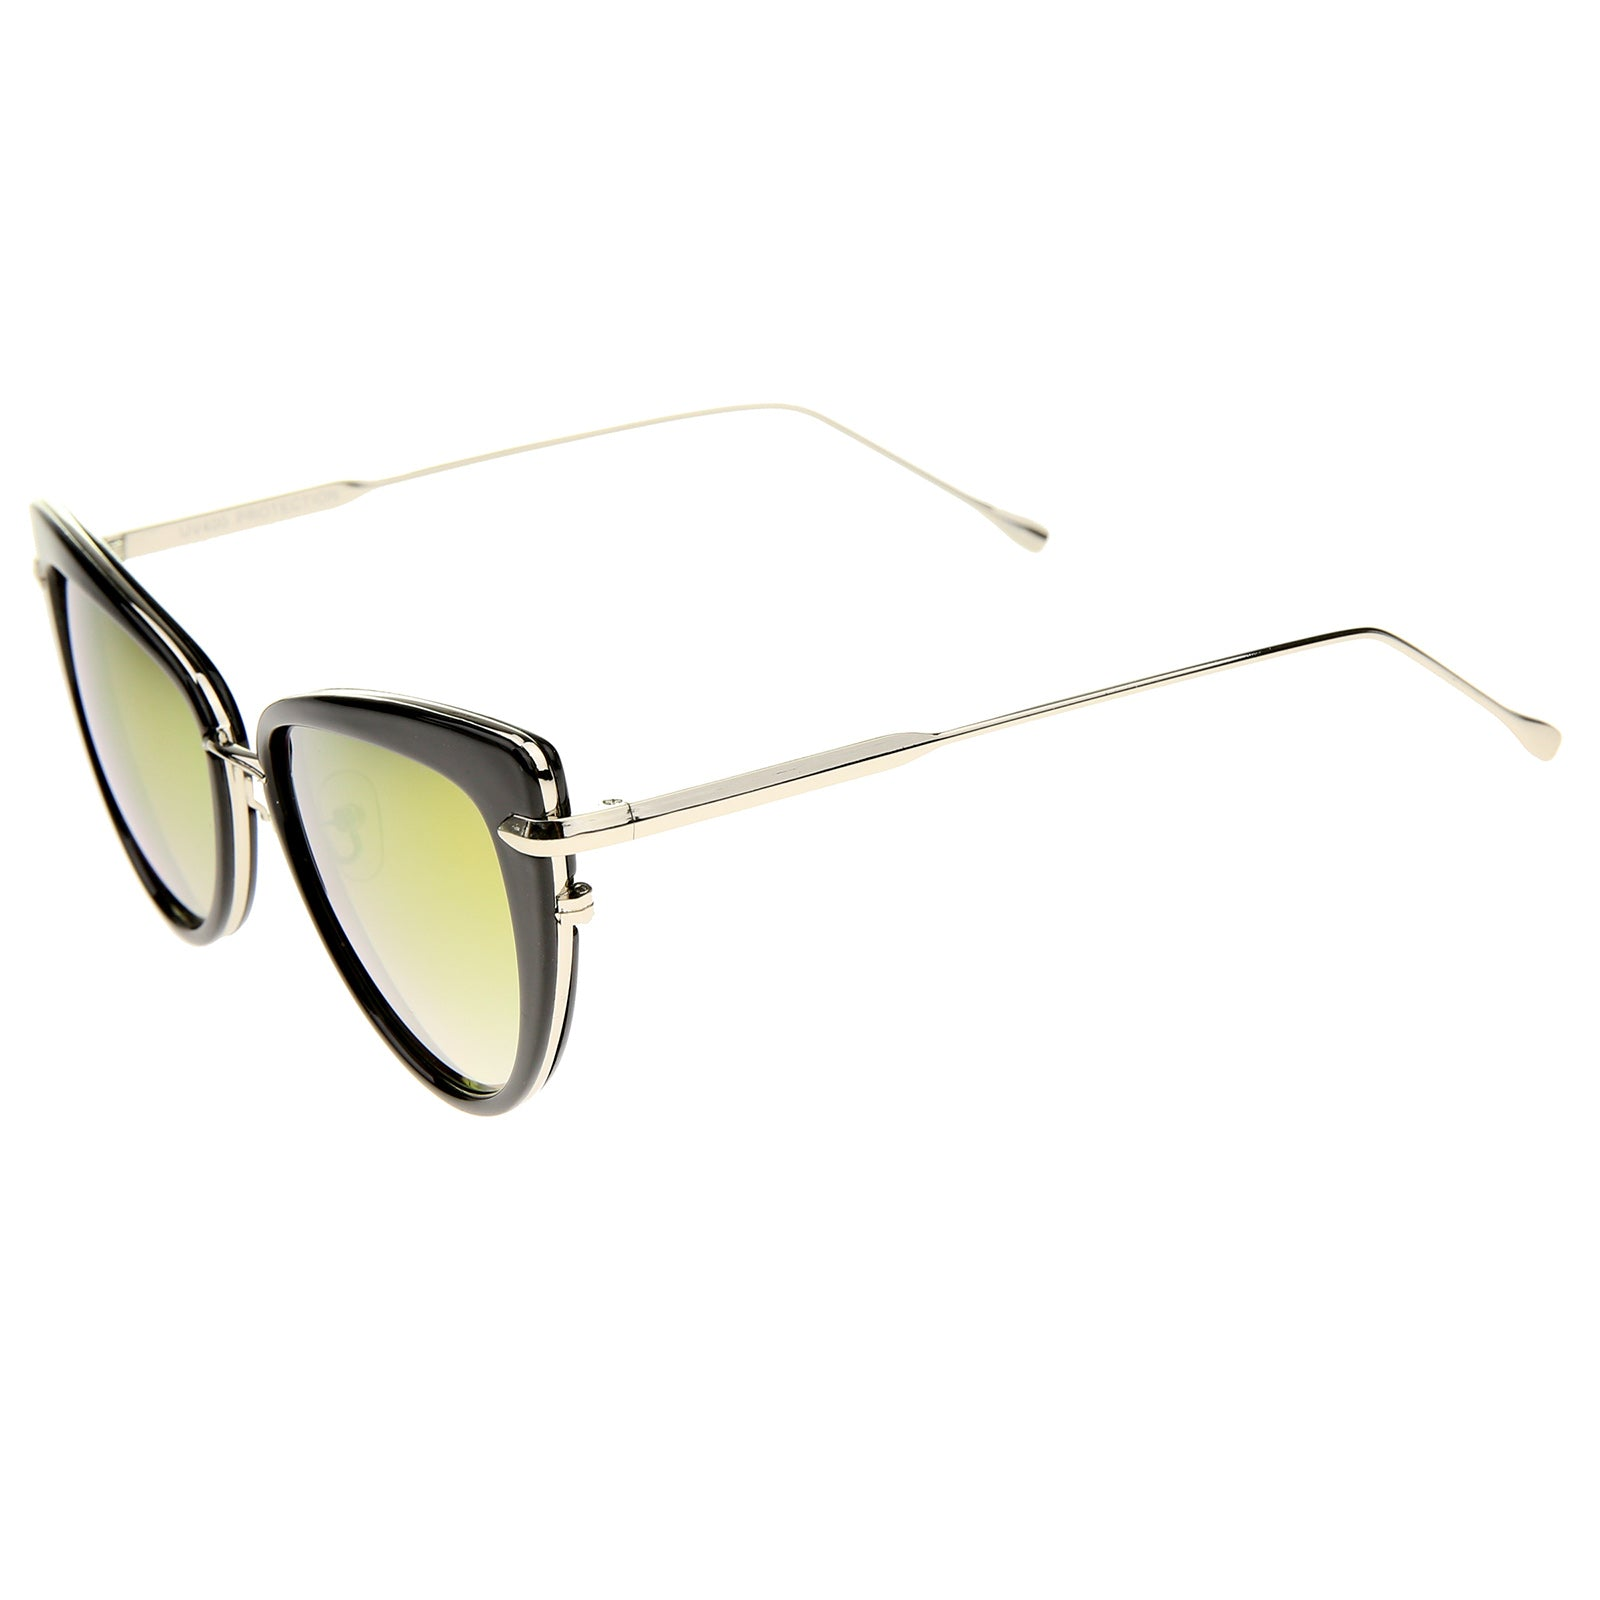 Women's High Fashion Metal Temple Super Cat Eye Sunglasses 55mm - sunglass.la - 19